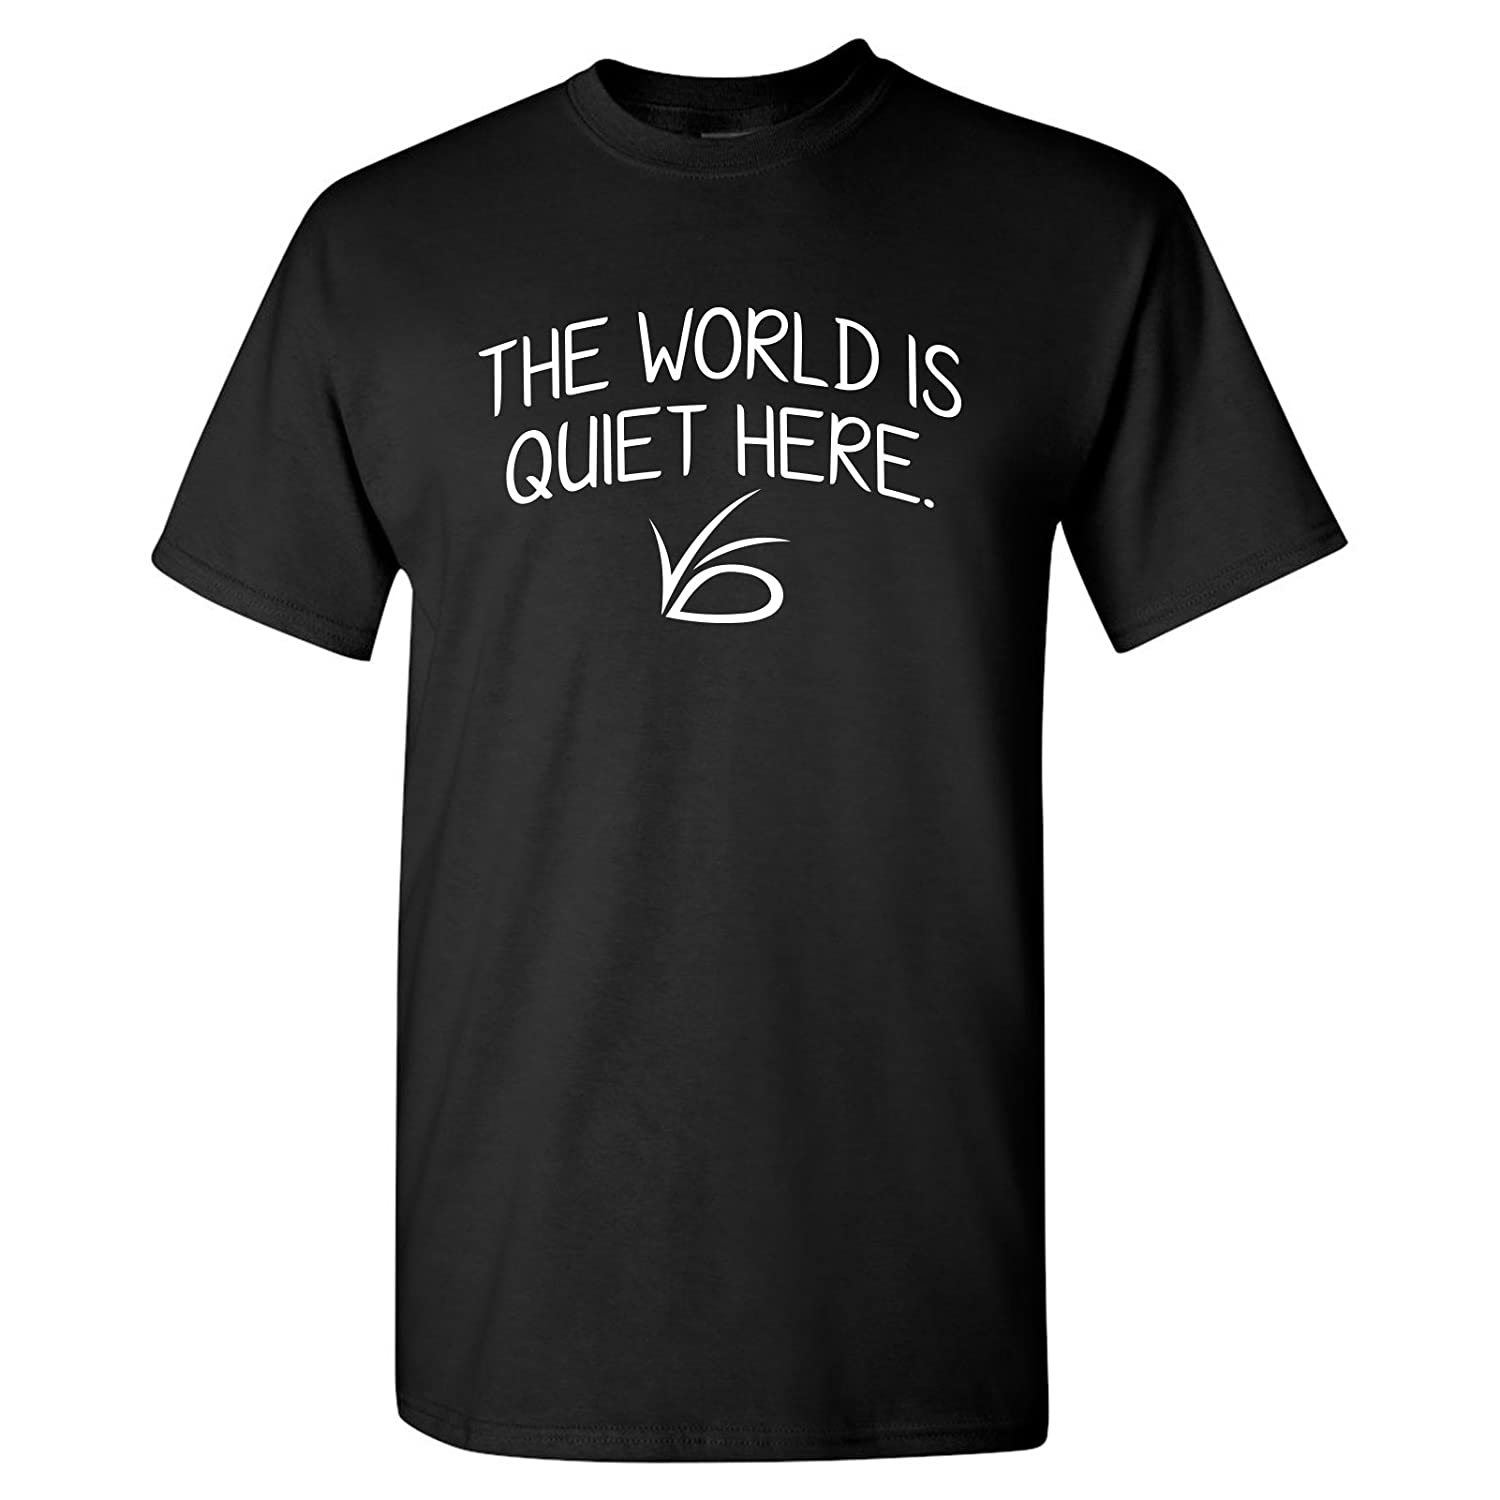 306a70fa UGP Campus Apparel The World is Quiet Here - Unlucky Silence VFD TV Show T  Shirt